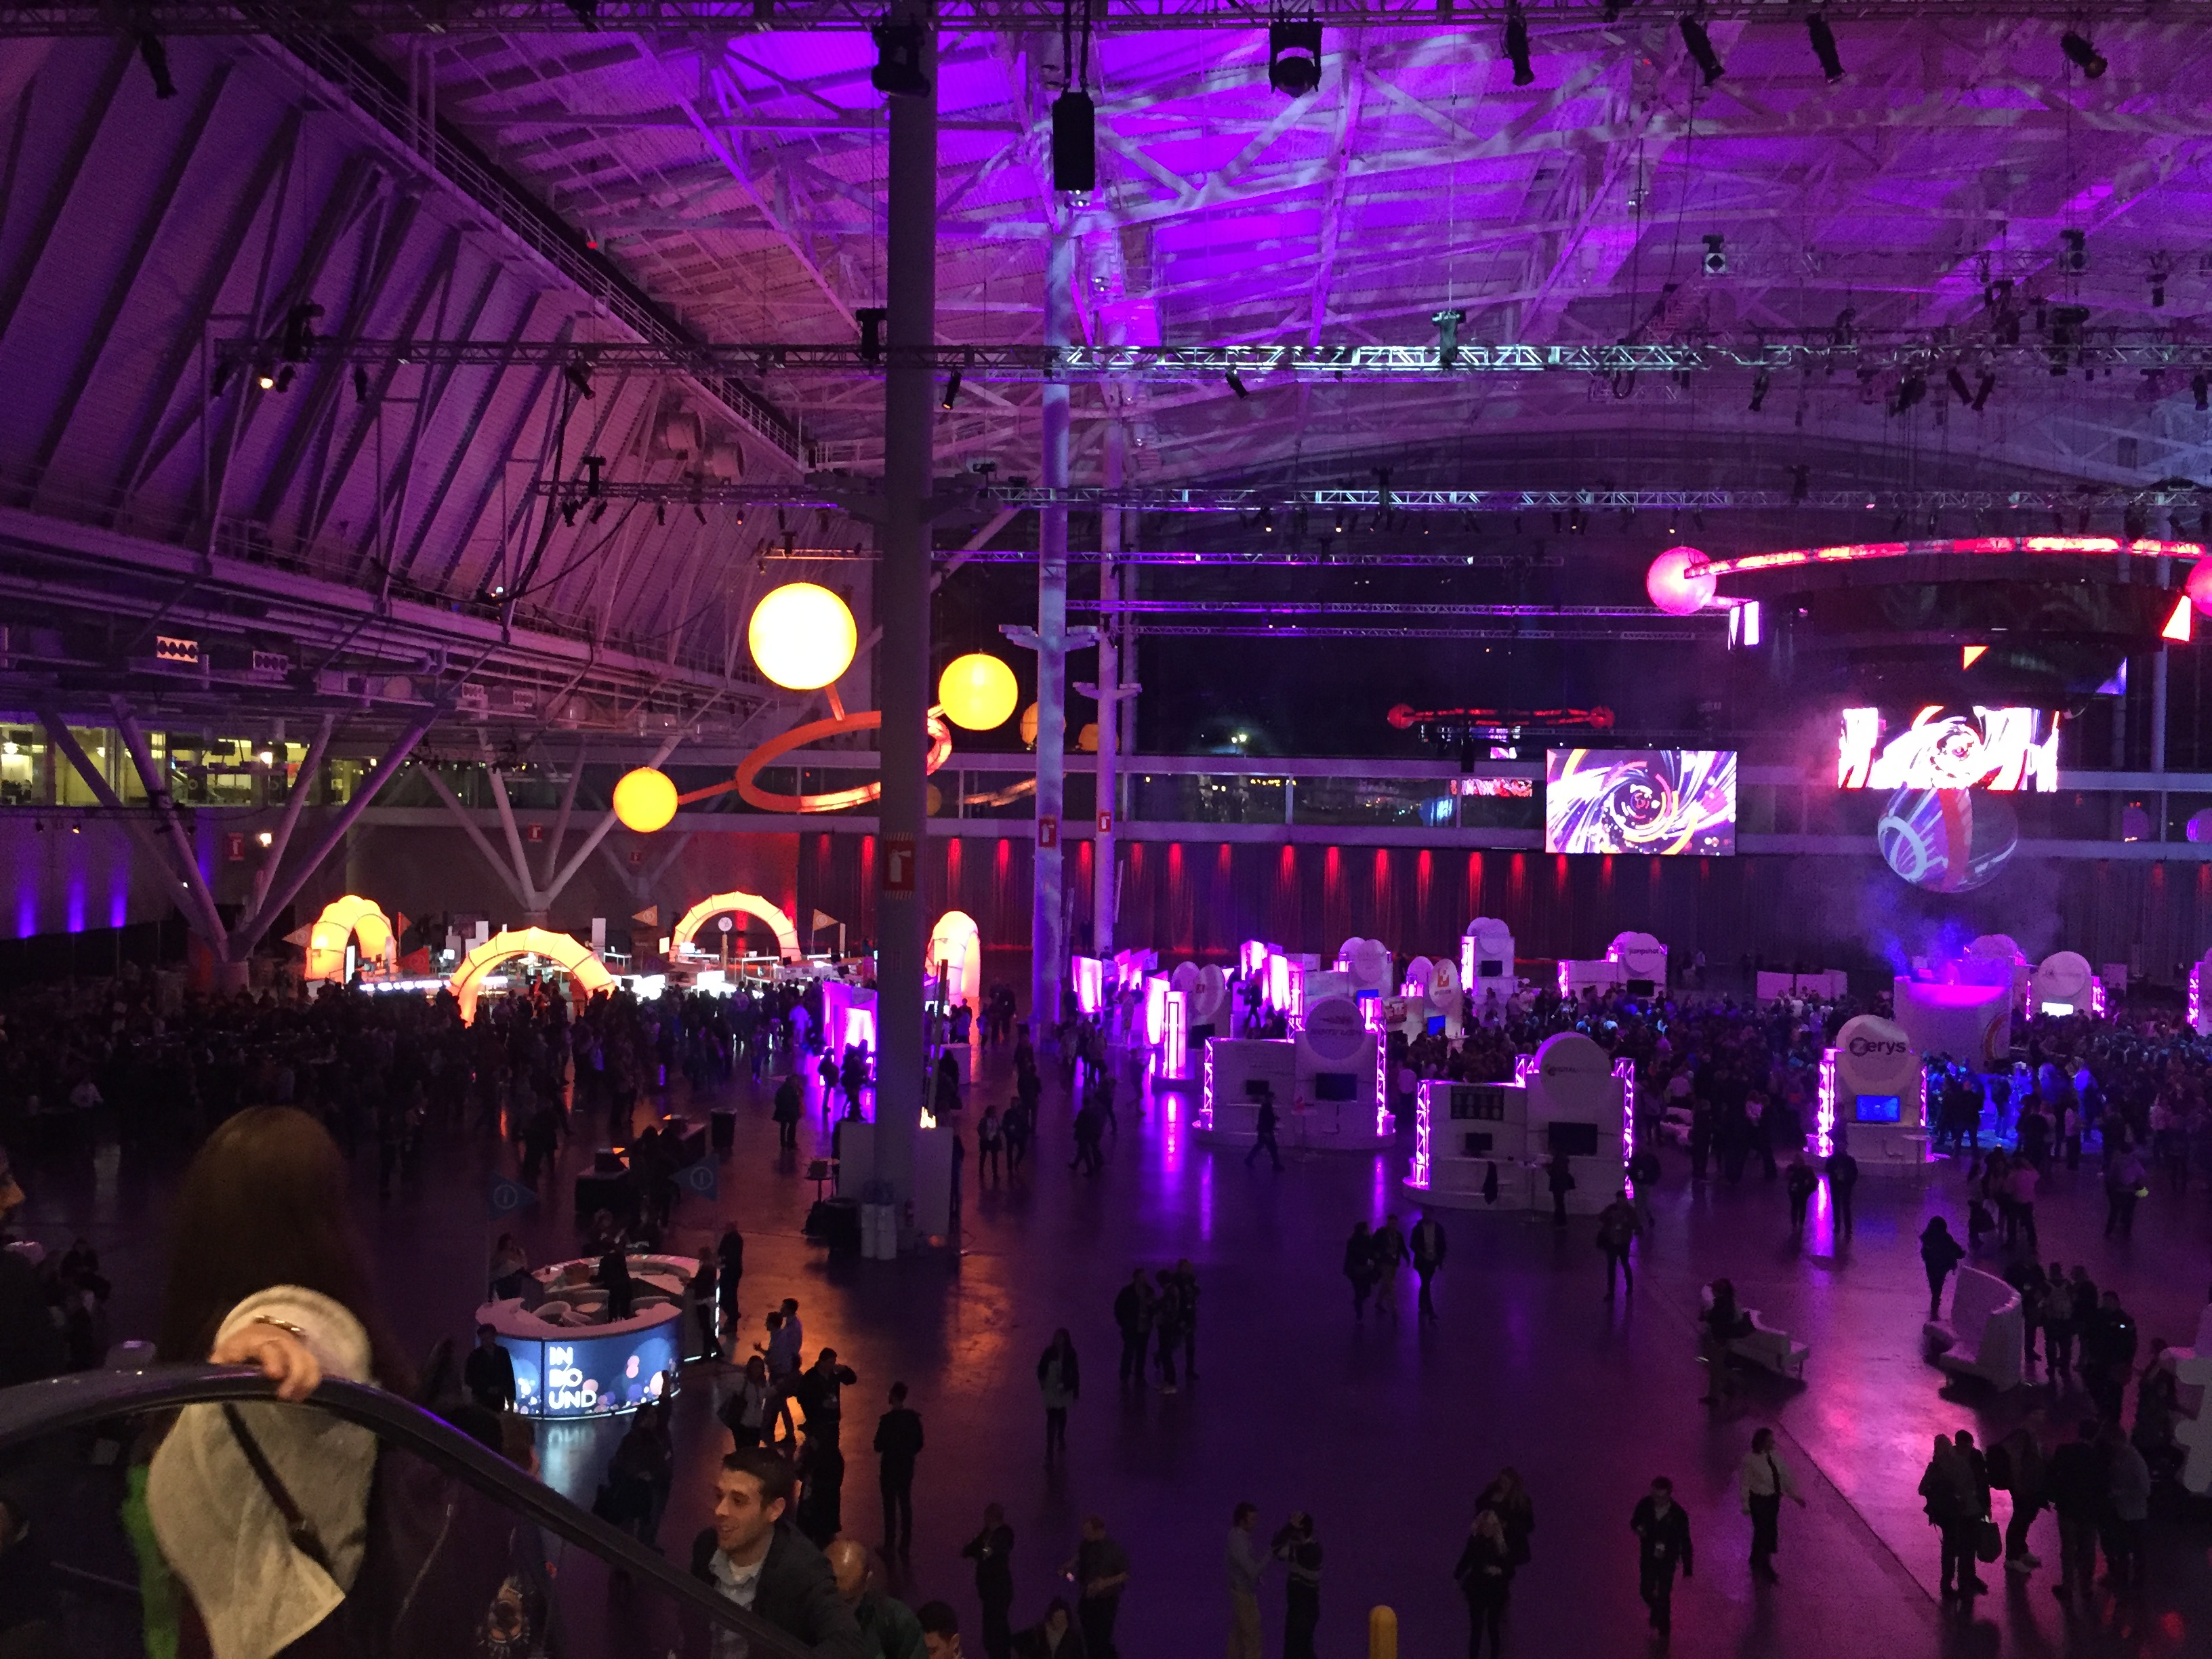 HubSpot's INBOUND marketing conference included a sleek tradeshow floor that definitely set itself apart from standard expos.